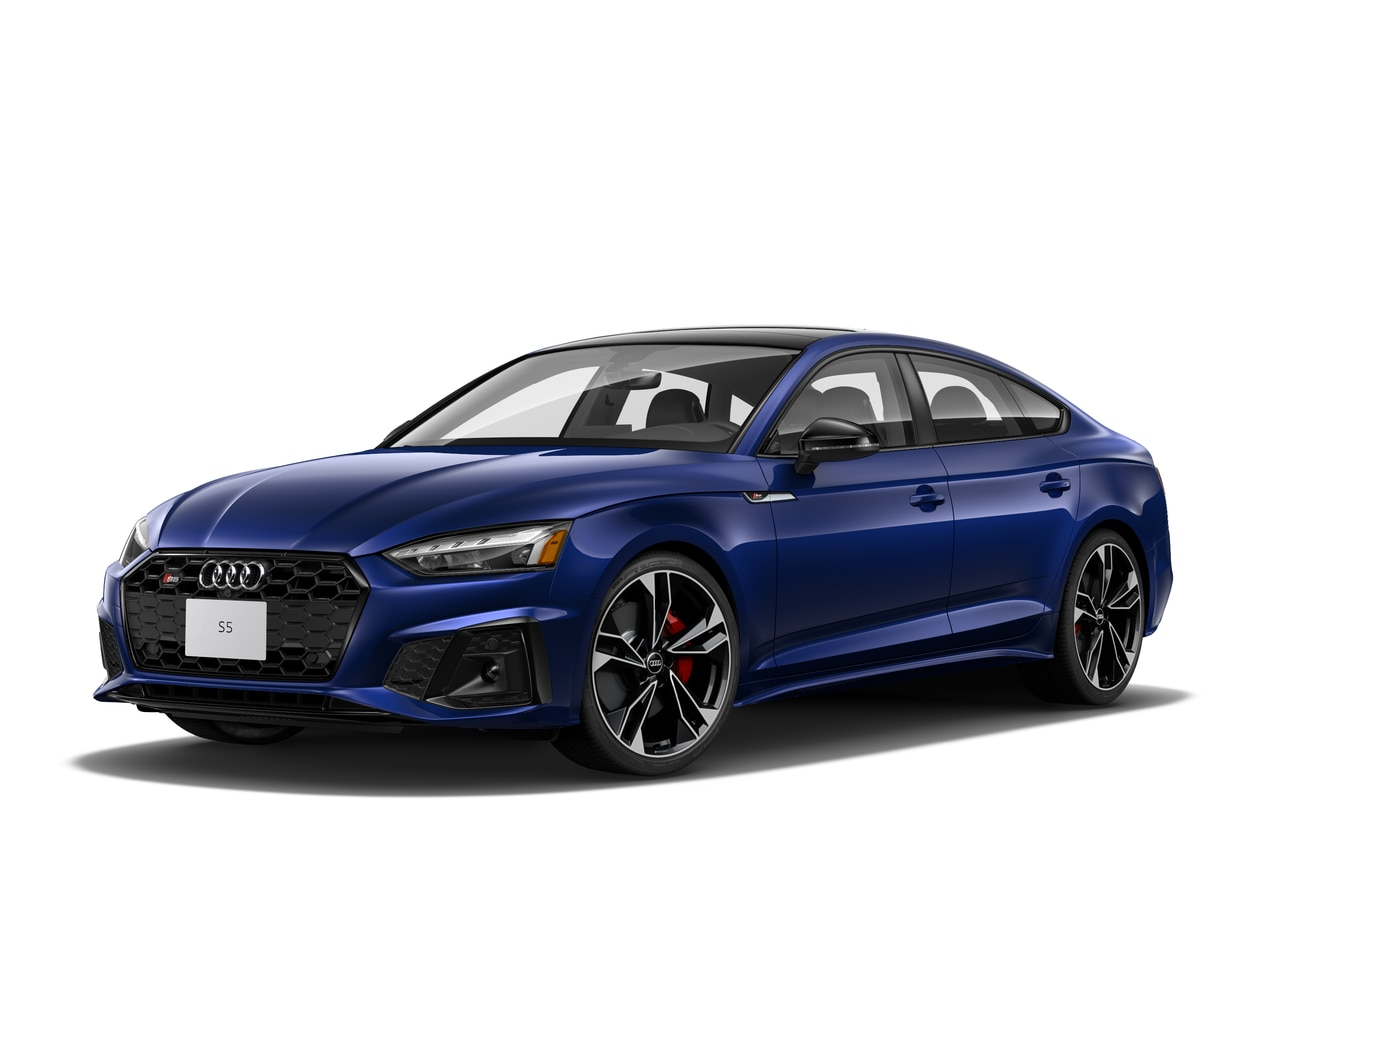 2020 audi s5 for sale in livermore ca  audi livermore